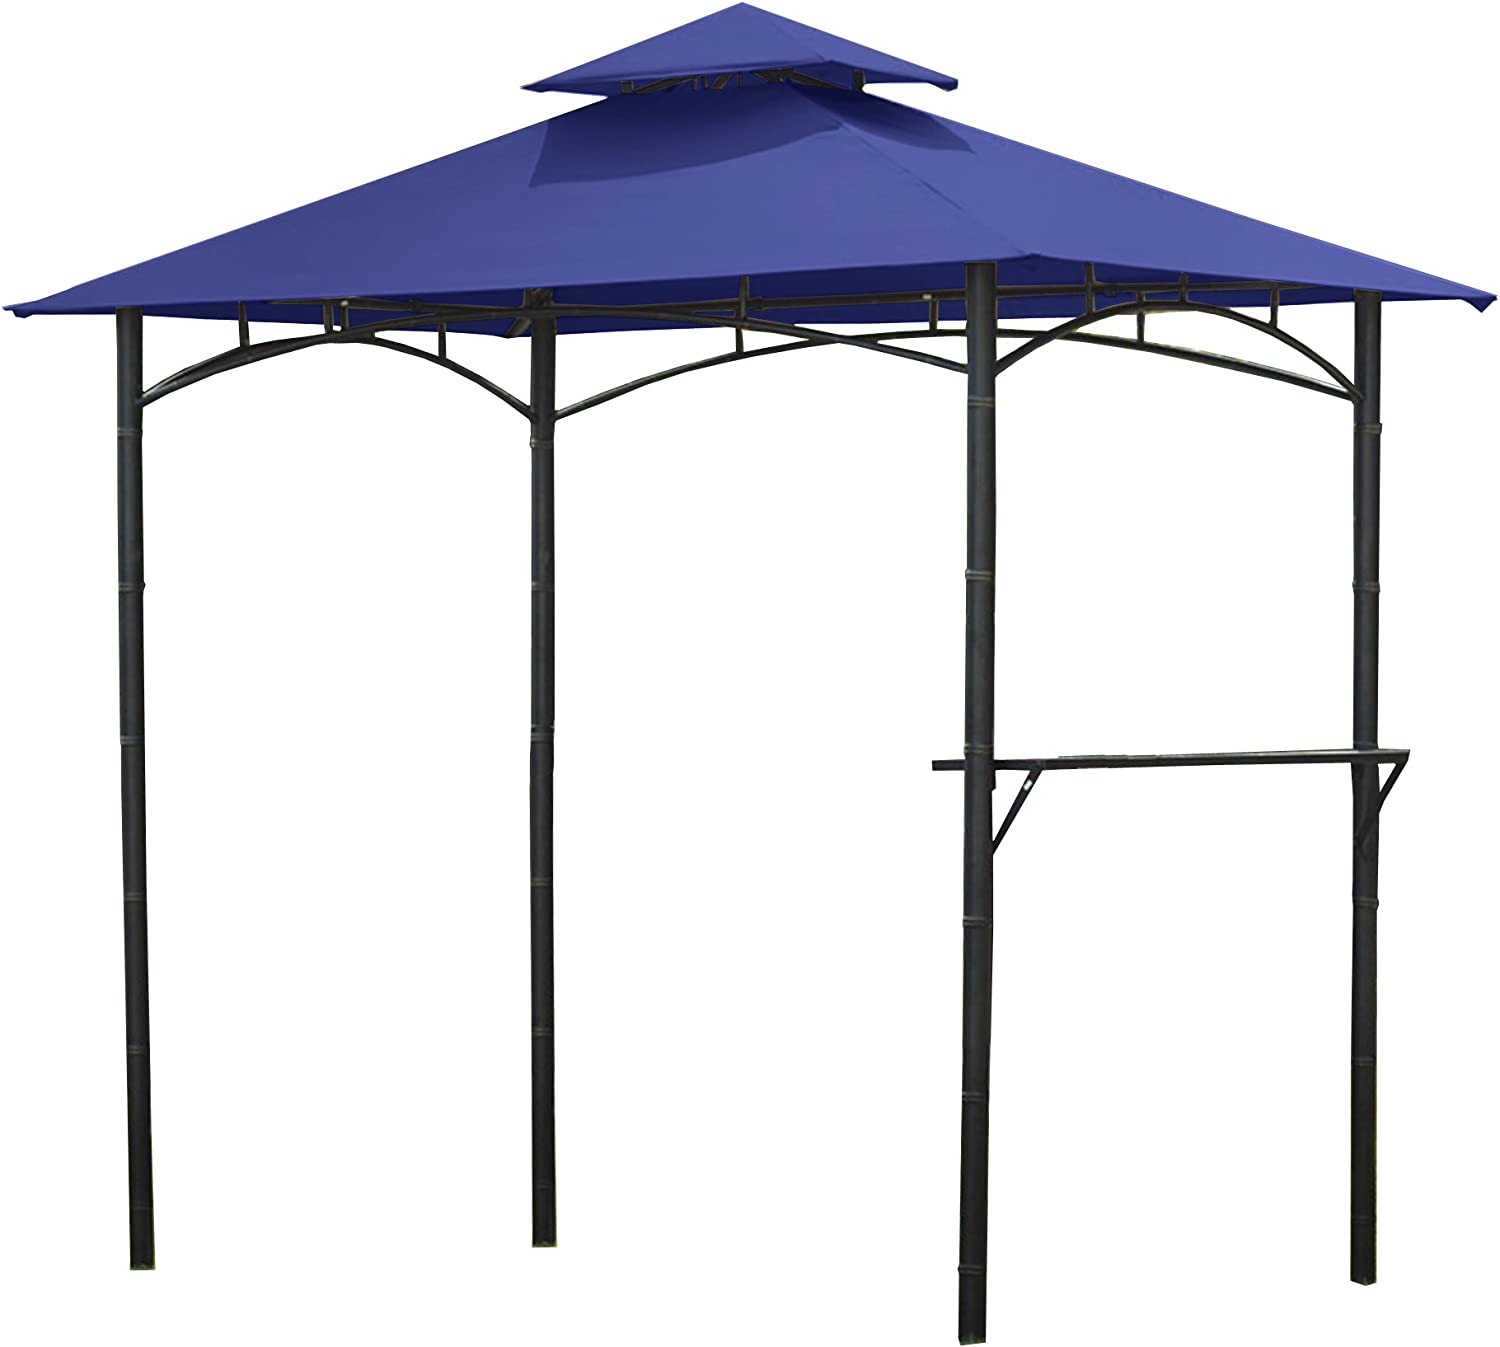 Garden Winds Replacement Canopy Top 5% OFF Bamboo for Cover Grill Look Fixed price for sale